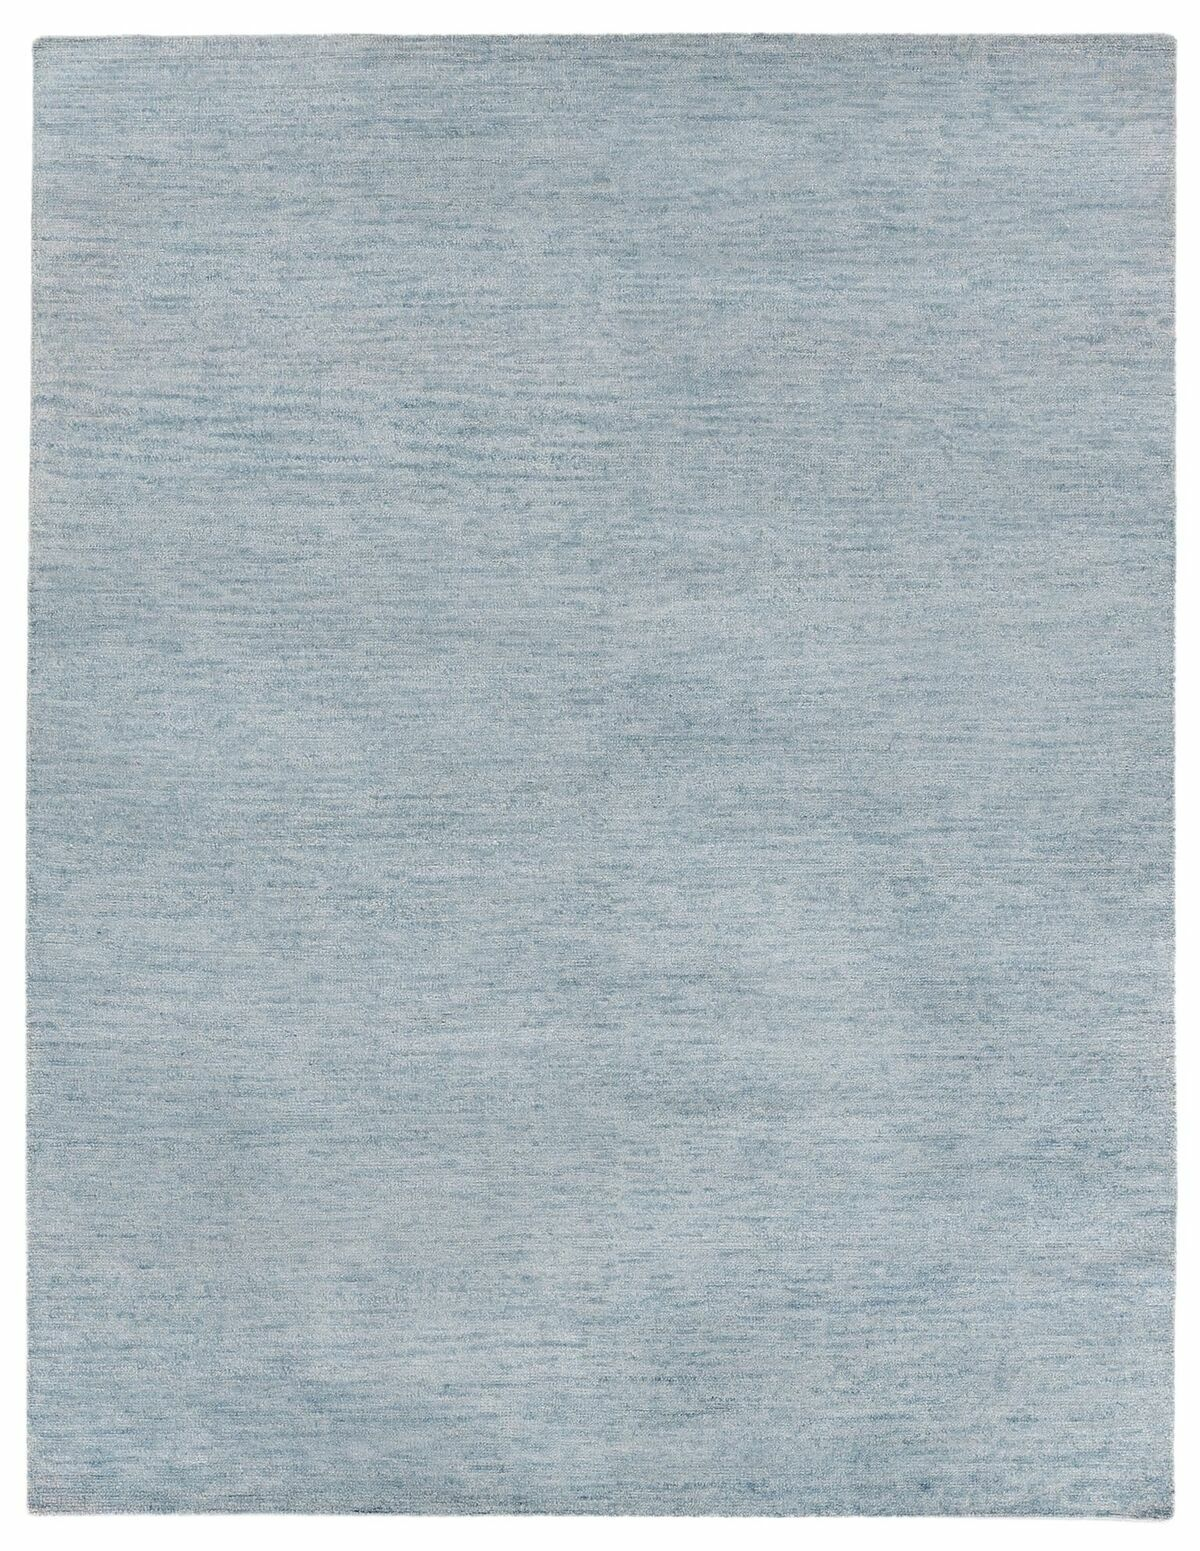 Perry Hand-Knotted Gray/Black Area Rug Rug Size: Rectangle 6' x 9'